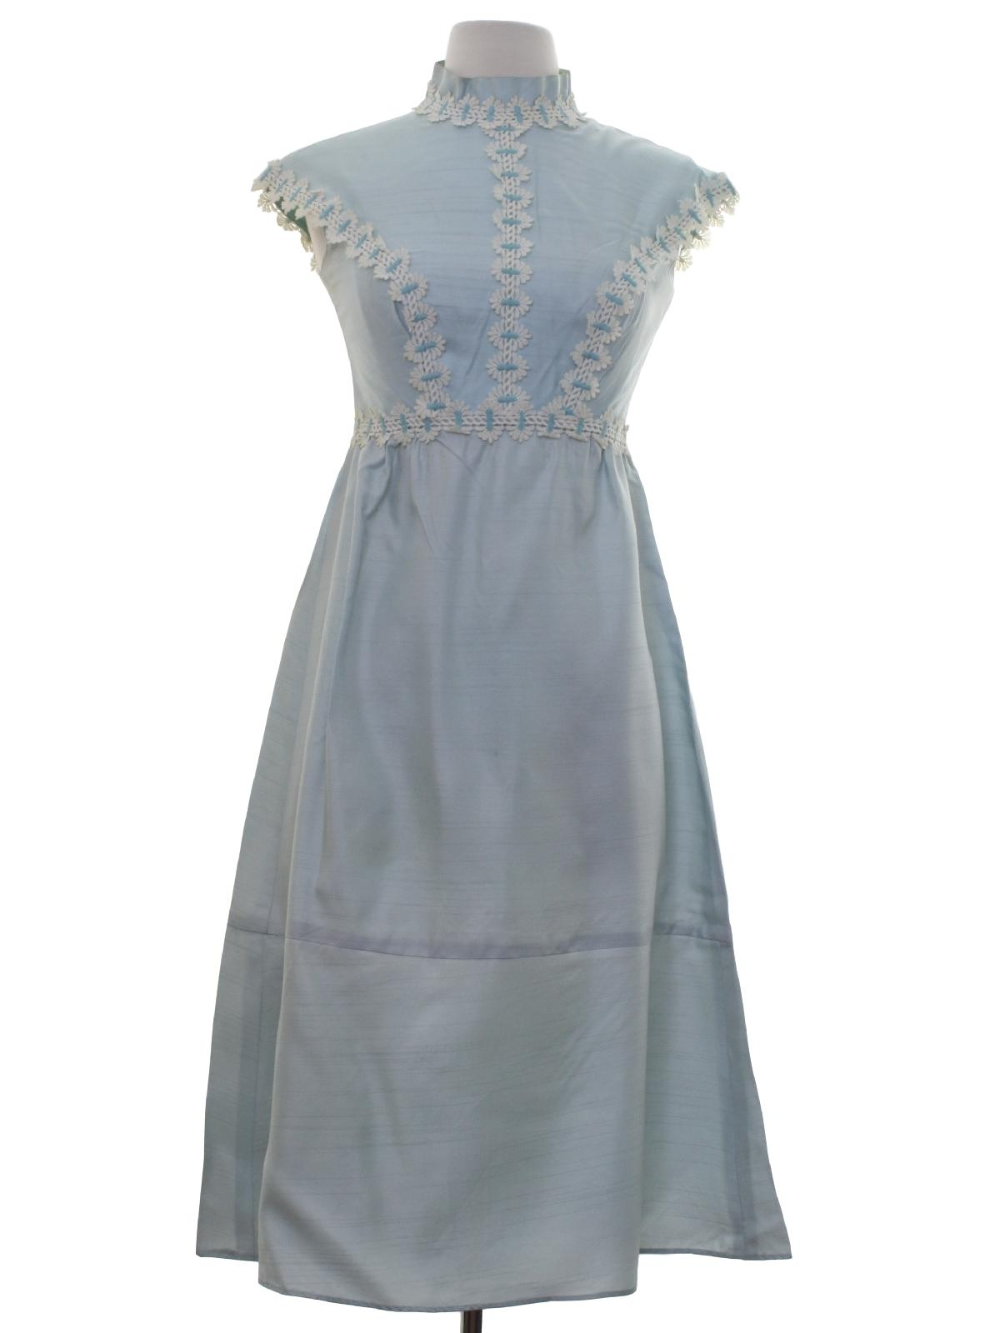 Retro 60s Cocktail Dress 60s No Label Petite Womens Or Girls Ice Blue Blended Cotton Shantung Dress That Has A 60s Cocktail Dress Vintage Outfits Clothes [ 1333 x 1000 Pixel ]